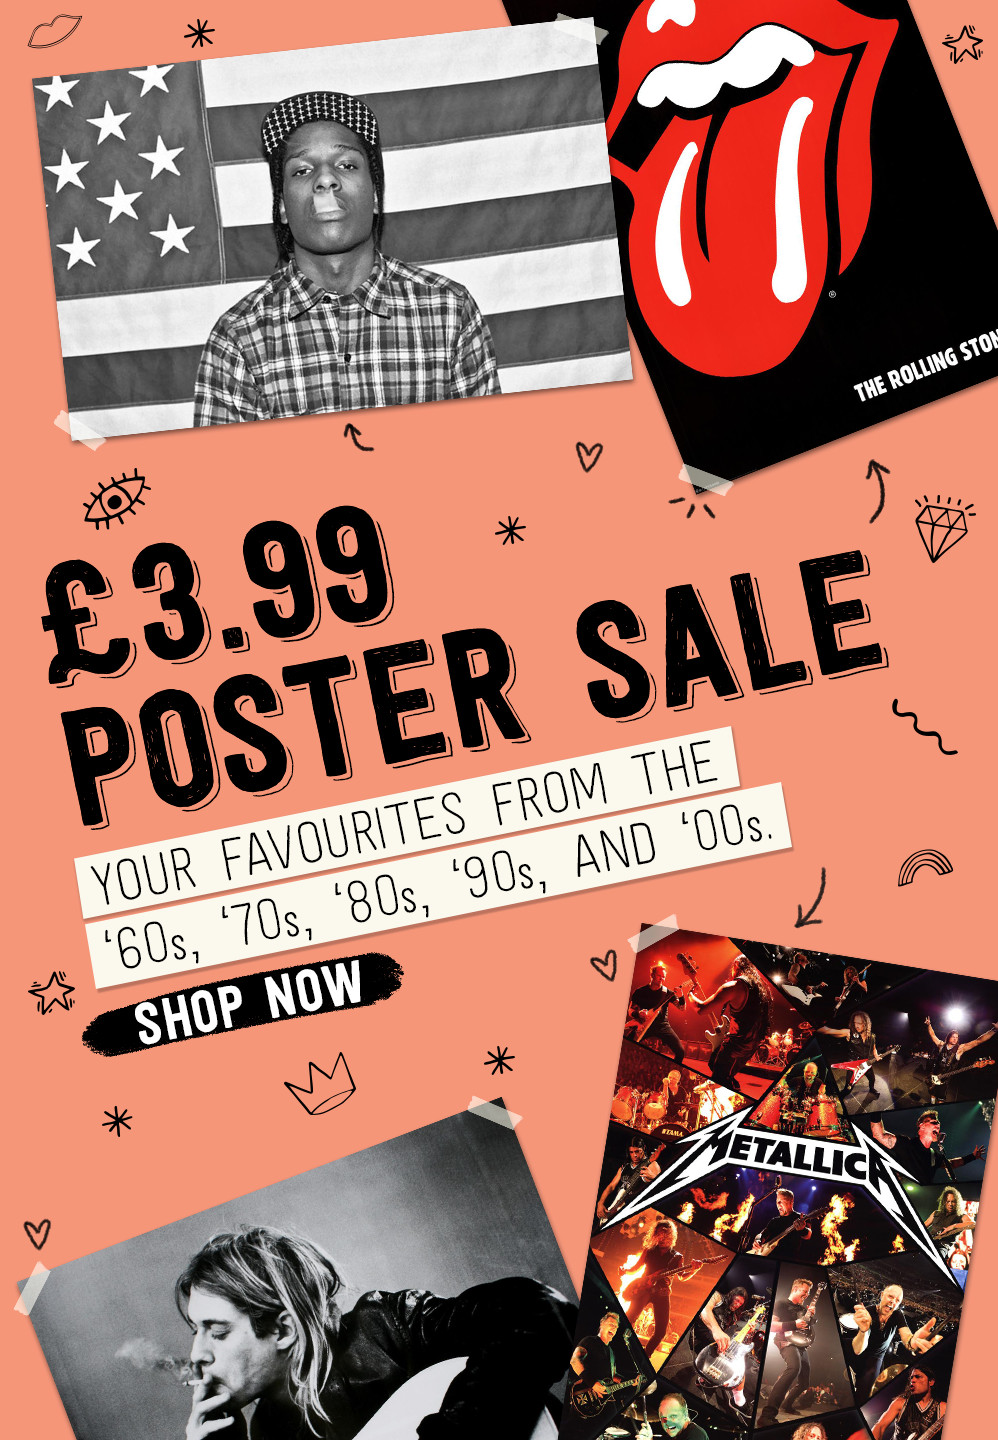 £3.99 POSTER SALE. Your favourites from the '60s, '70s, '80s, '90s, and '00s. Shop Now